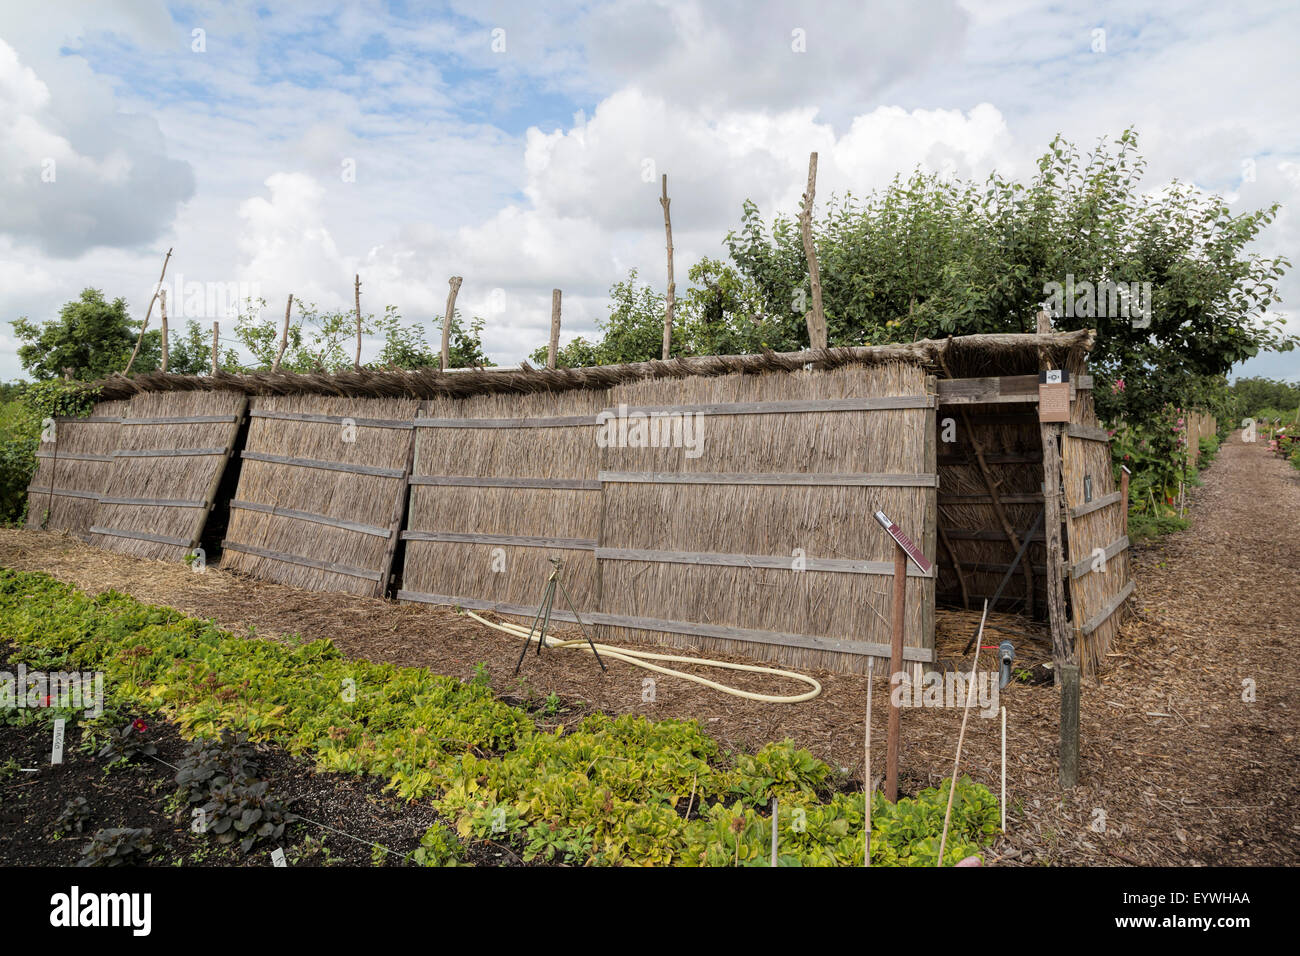 Drying storage for Gilliflowers in the Historical Garden Aalsmeer, a botanical garden in North Holland, The Netherlands. Stock Photo